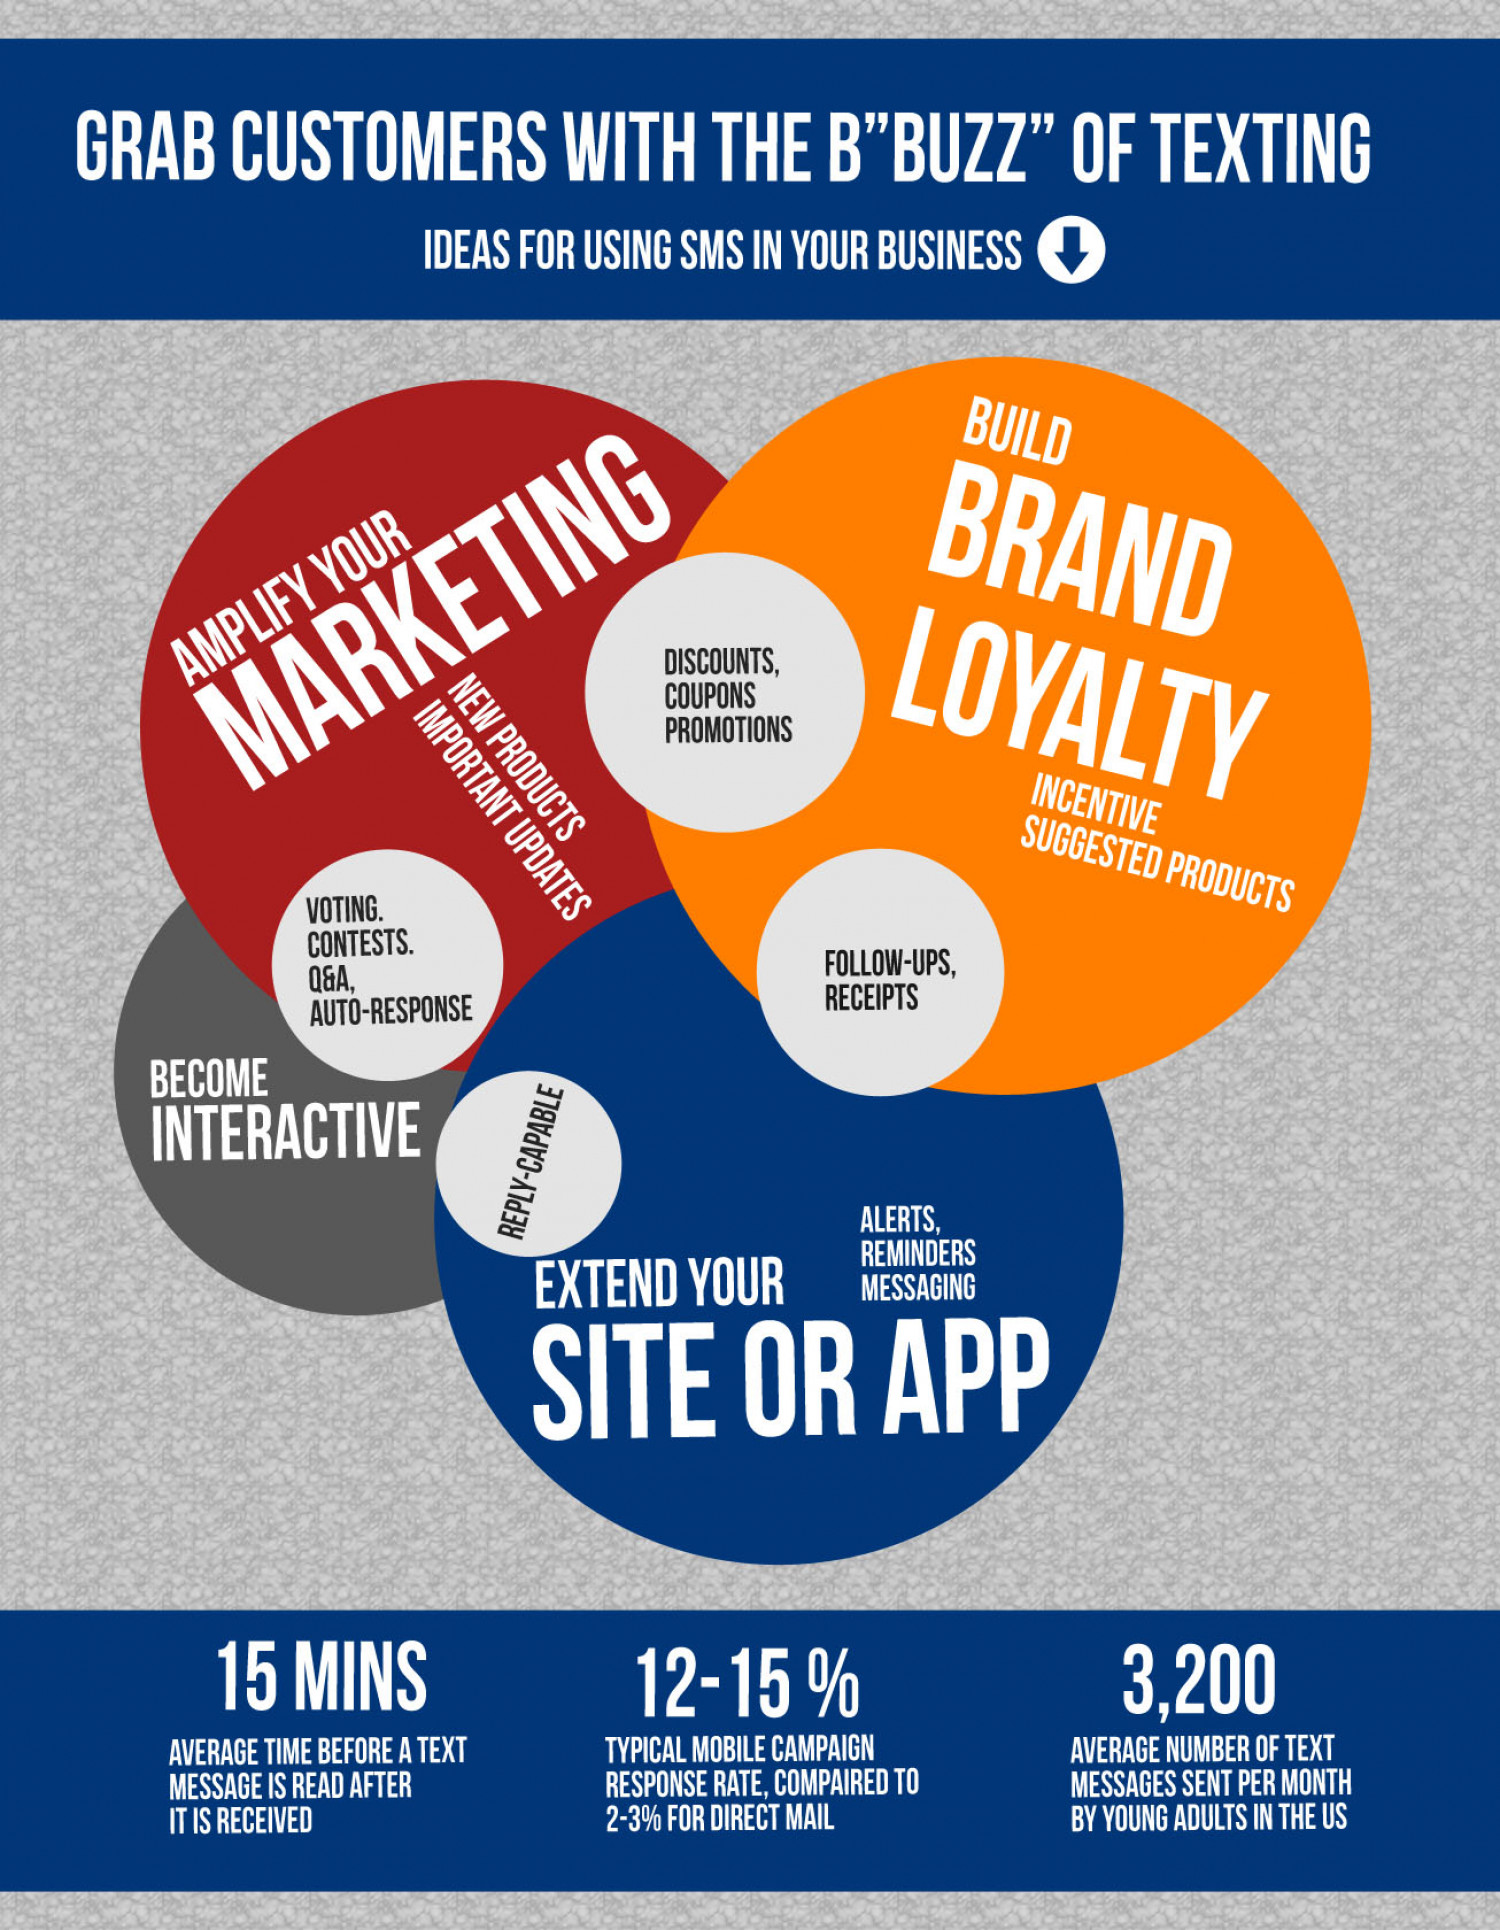 Grab Customers With The B Buzz of Texting Infographic